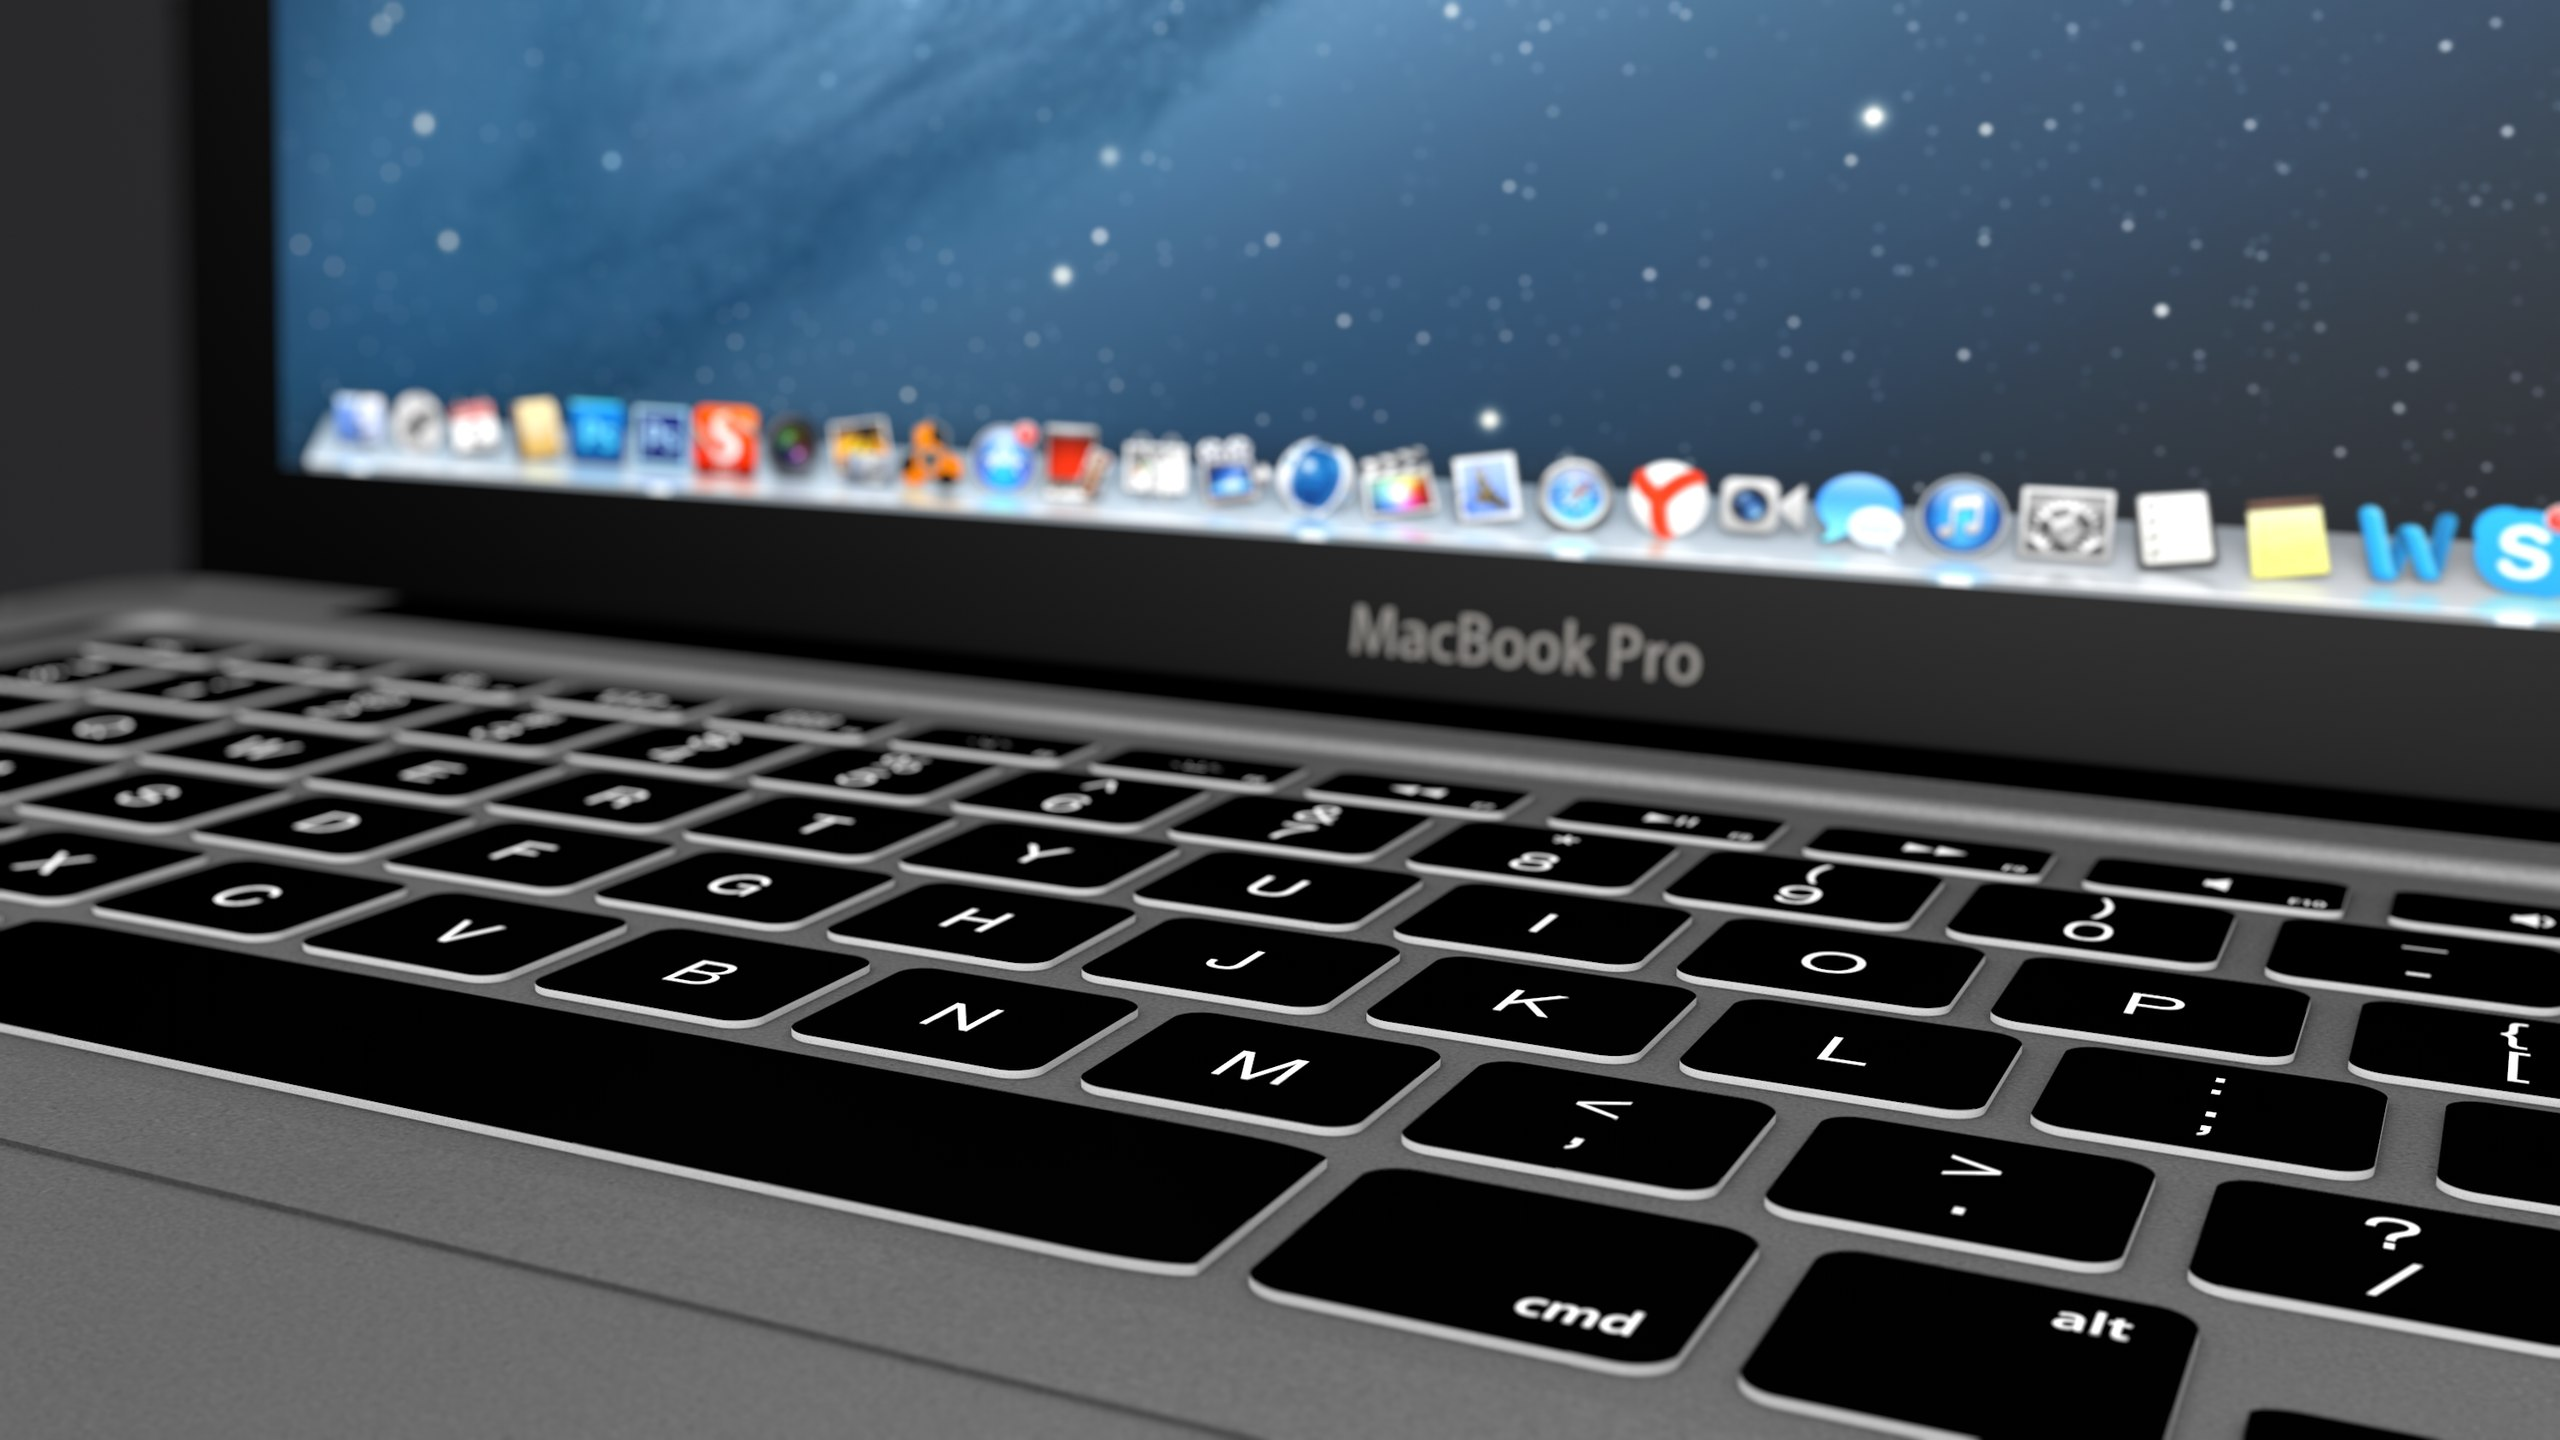 Macbook pro full hd wallpaper and background image - Full hd wallpapers for macbook pro ...